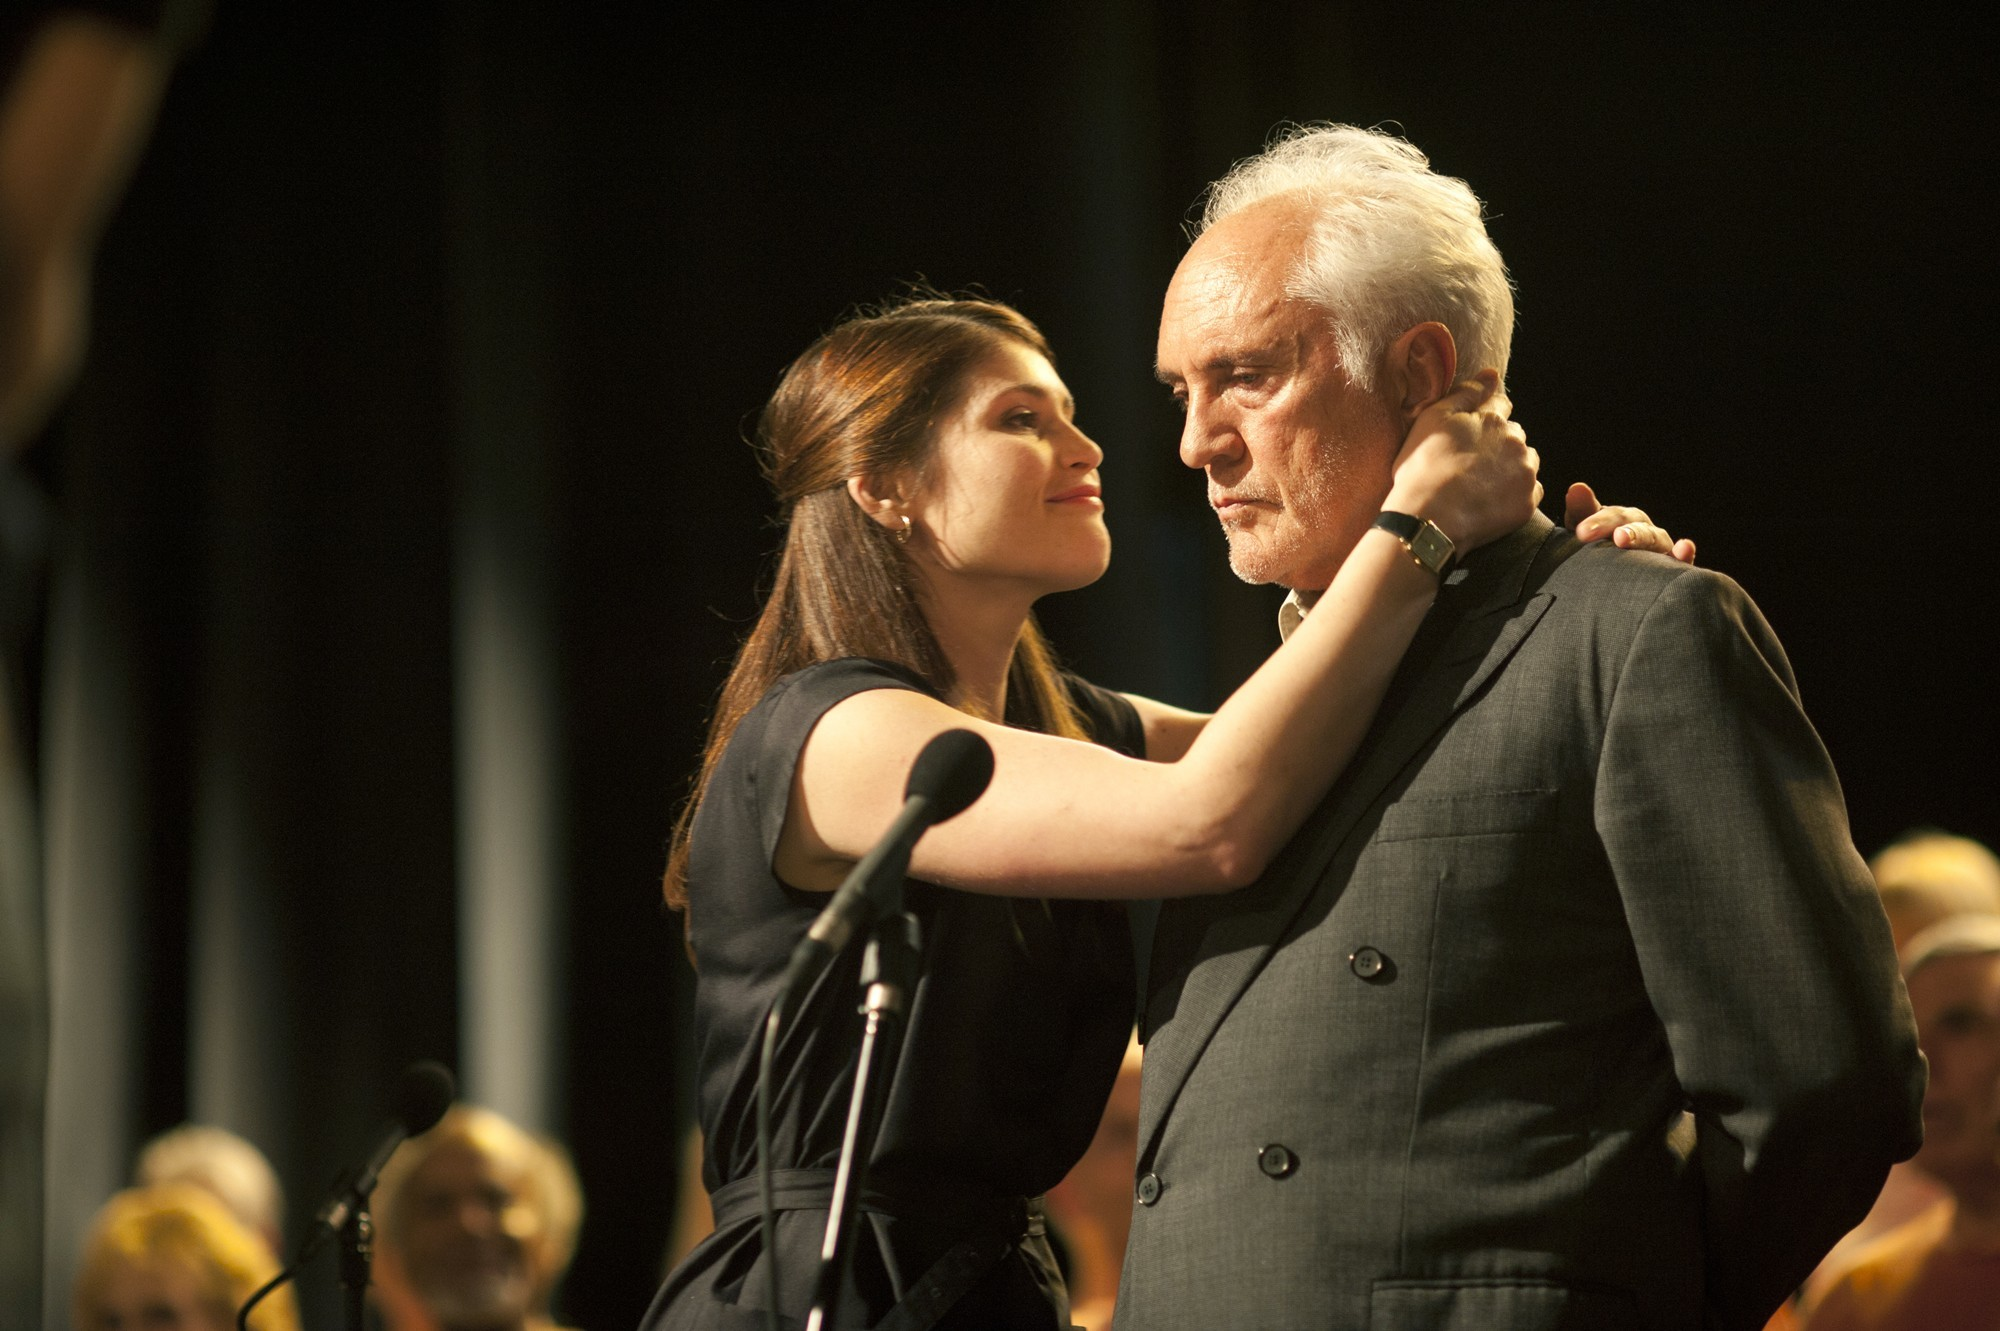 unfinished song terence stamp gemma arterton